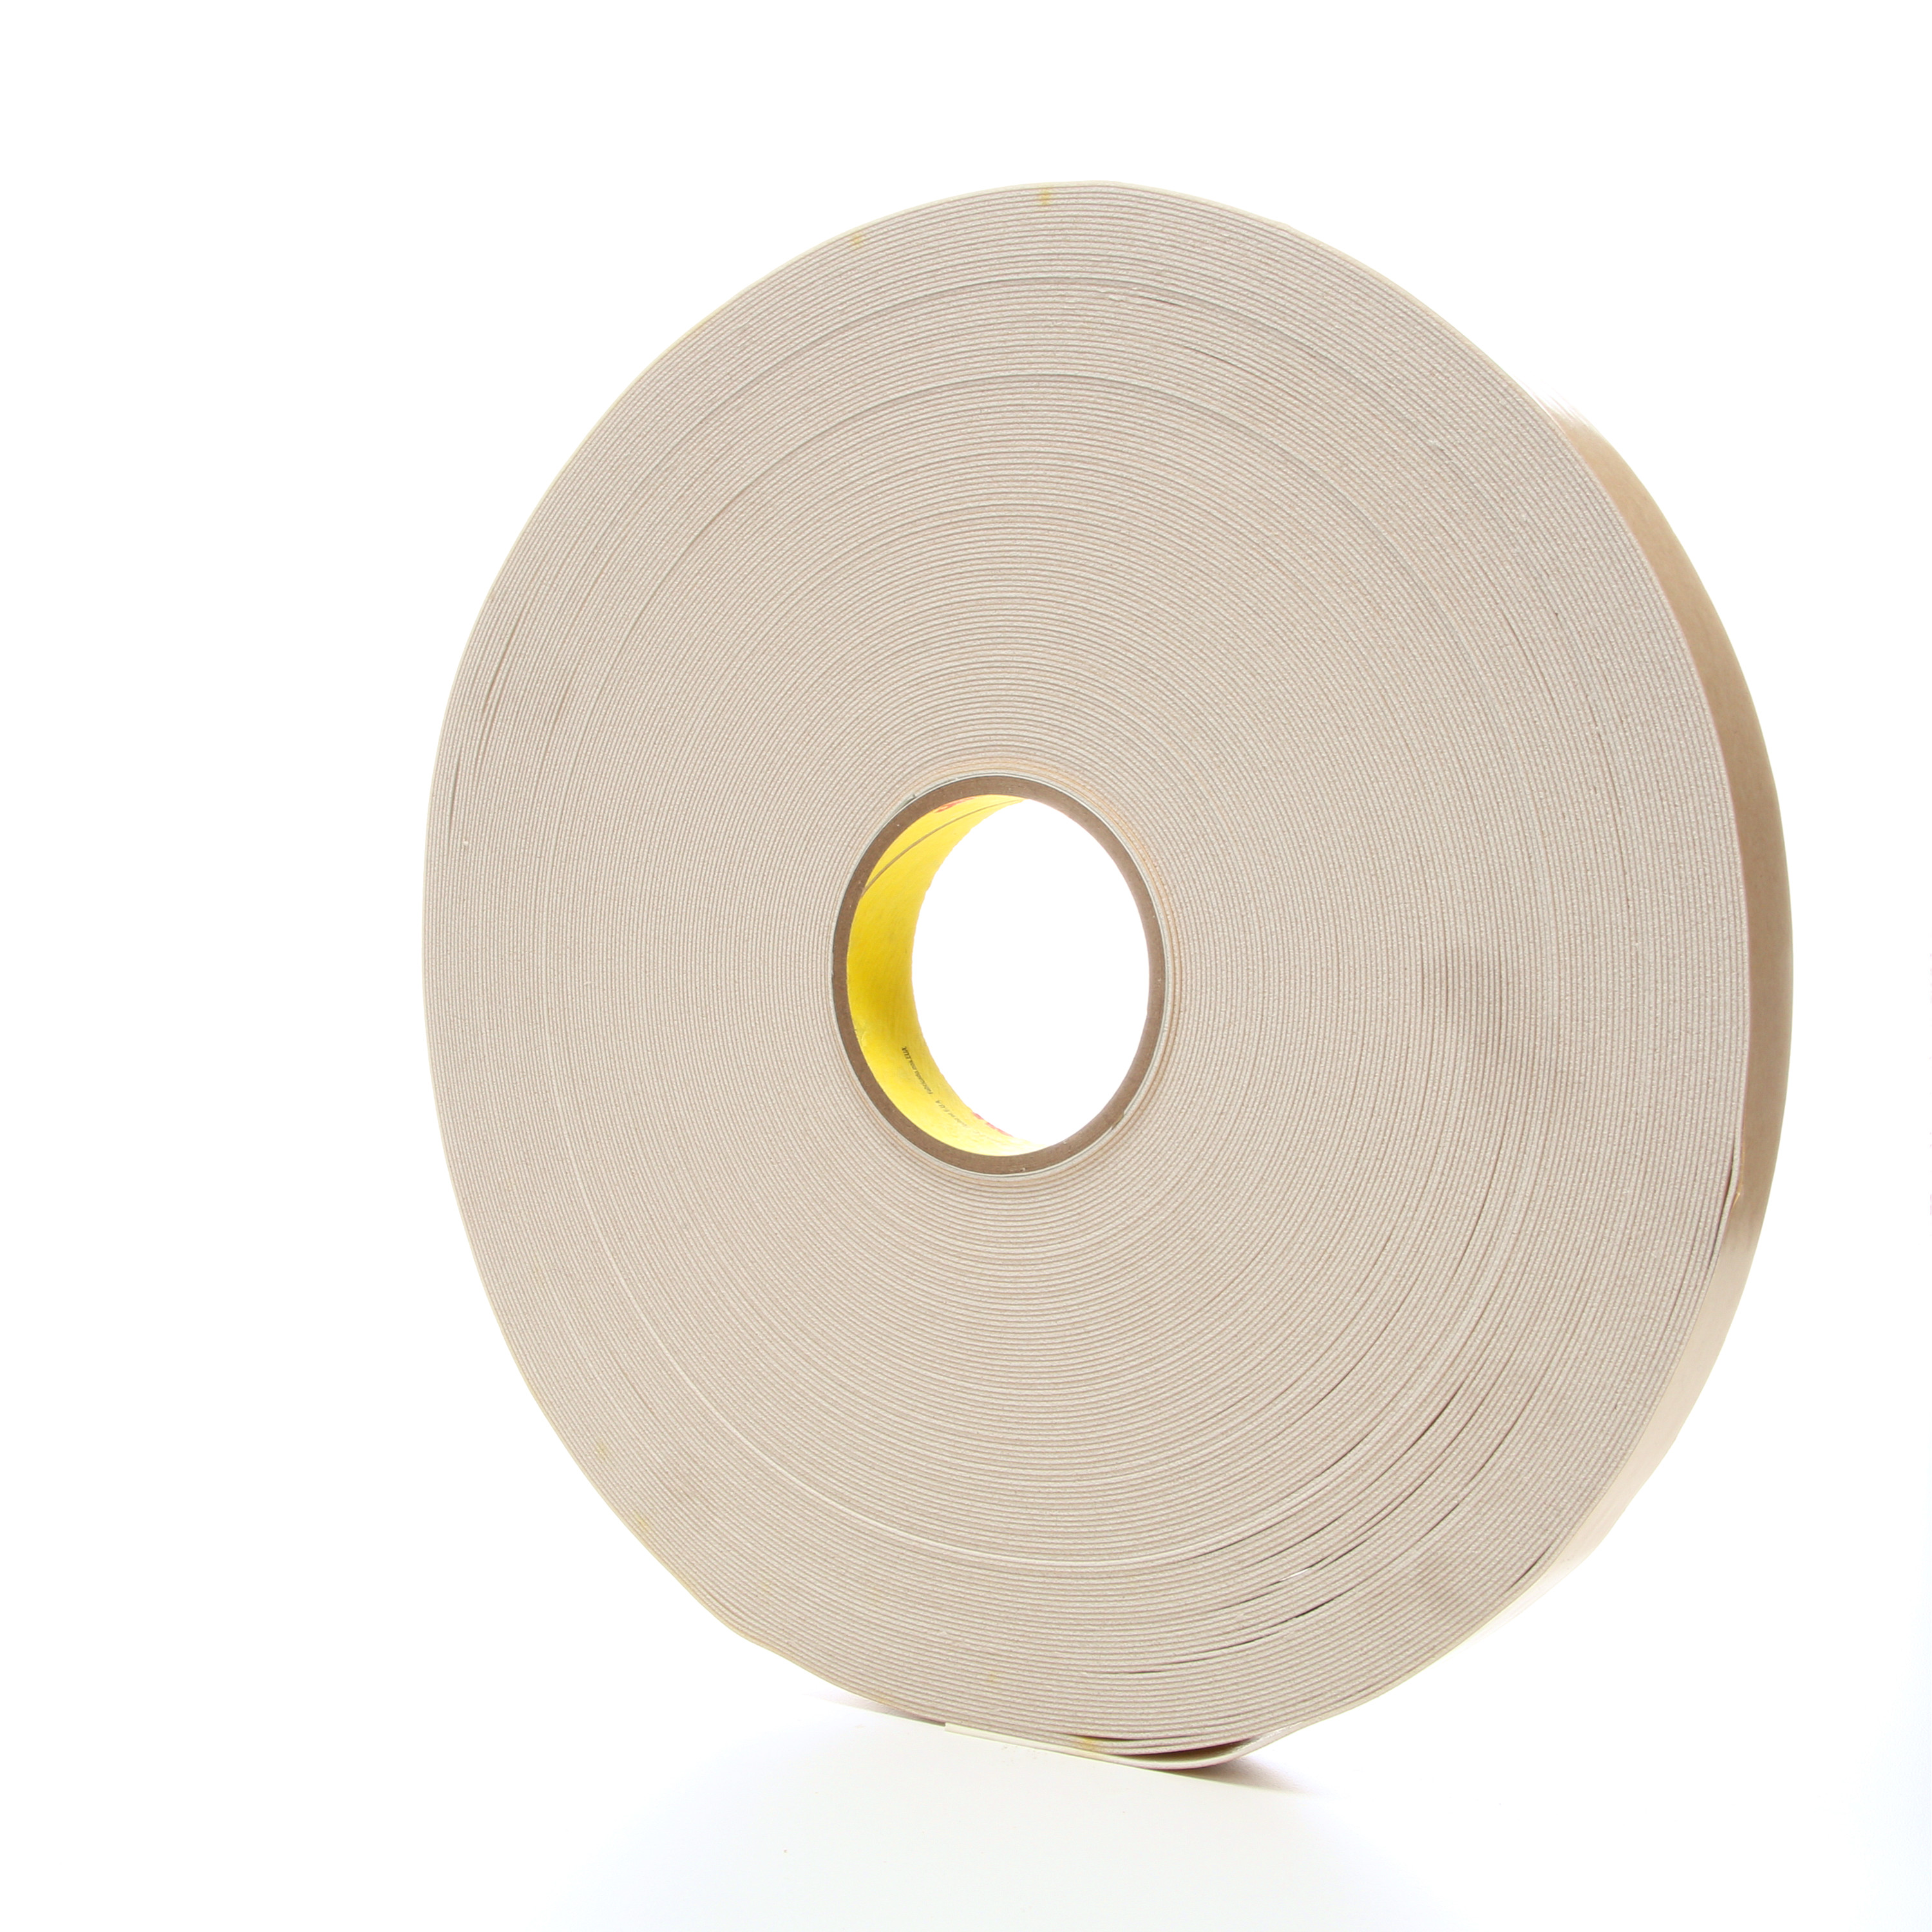 3M™ Double Coated Urethane Foam Tape 4085, Natural, 45 mil, Roll, Config